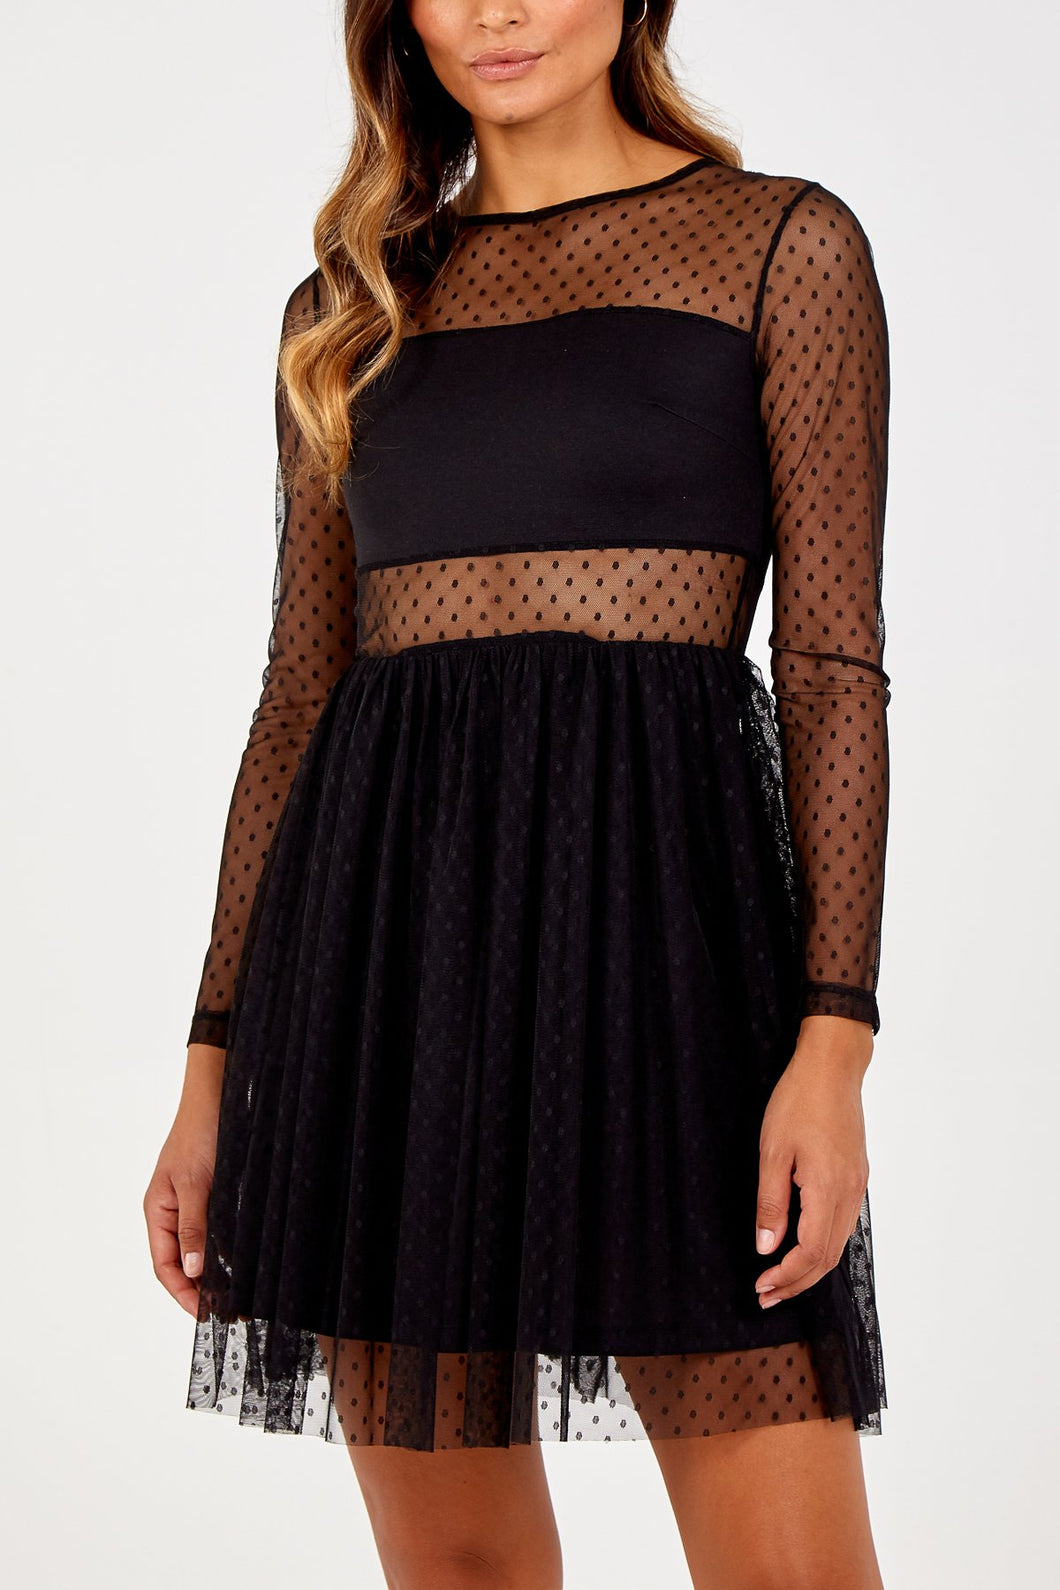 Black Dotty Short Mesh Dress